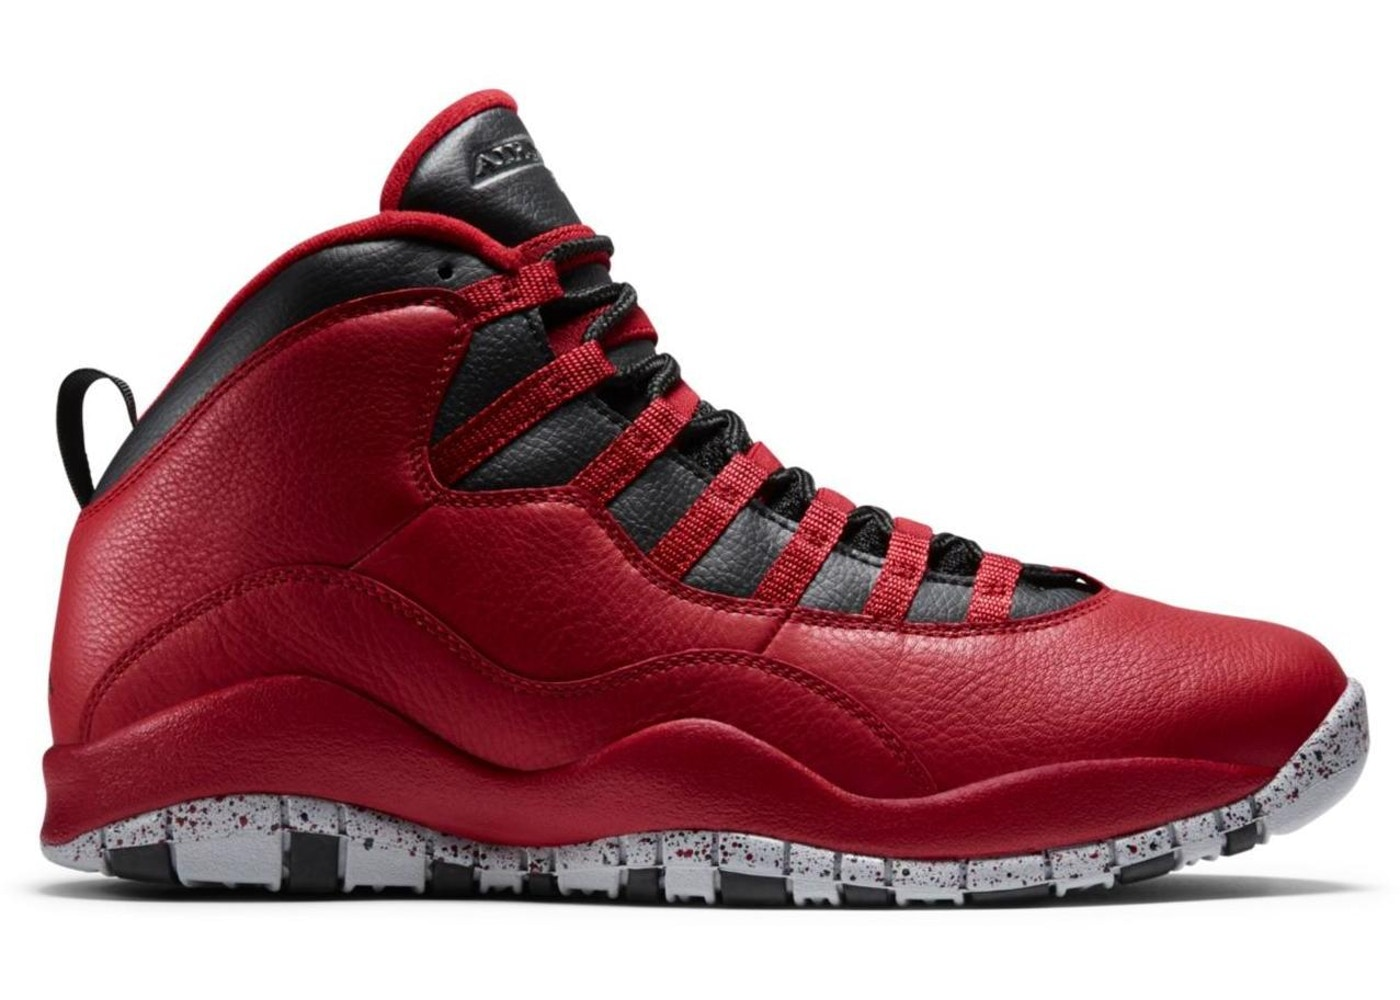 2113502a85 Buy Air Jordan 10 Shoes   Deadstock Sneakers